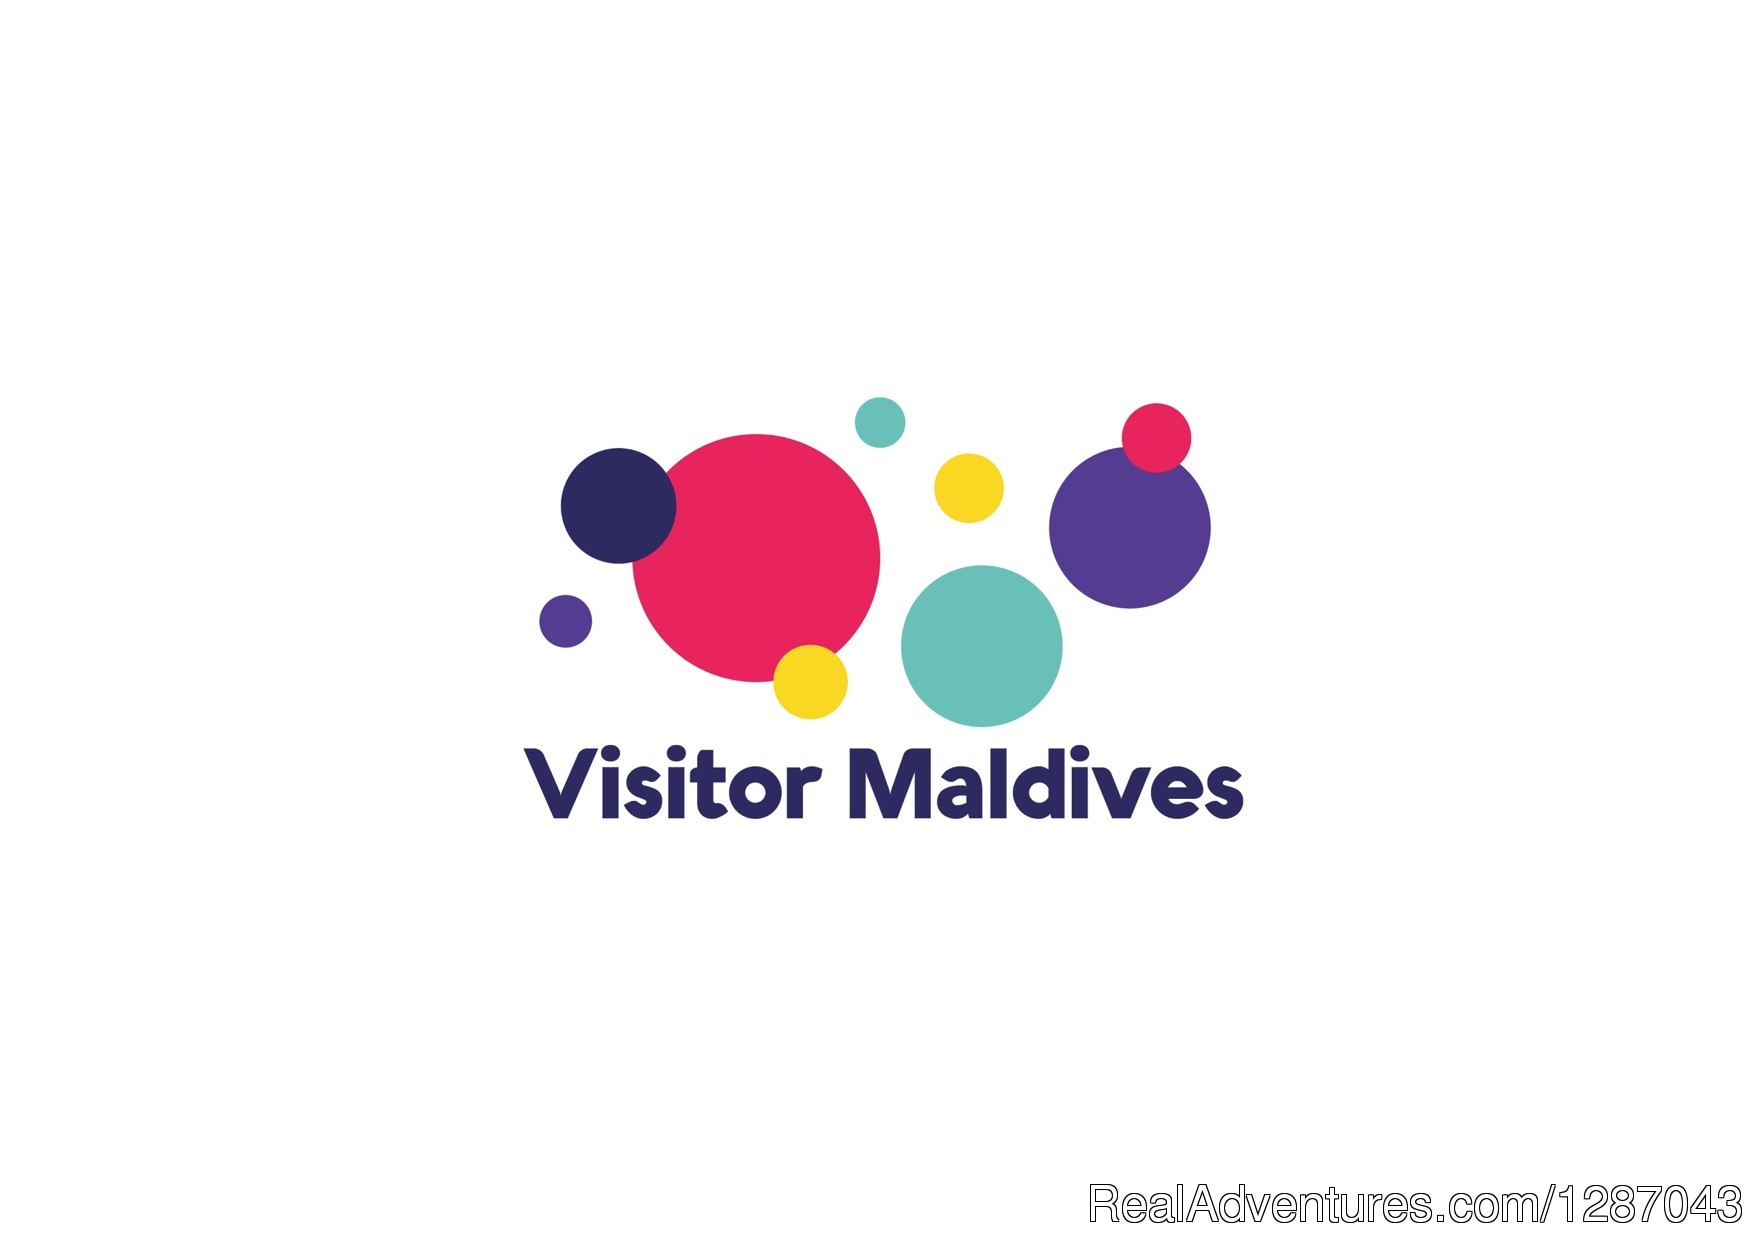 Visitor Maldives